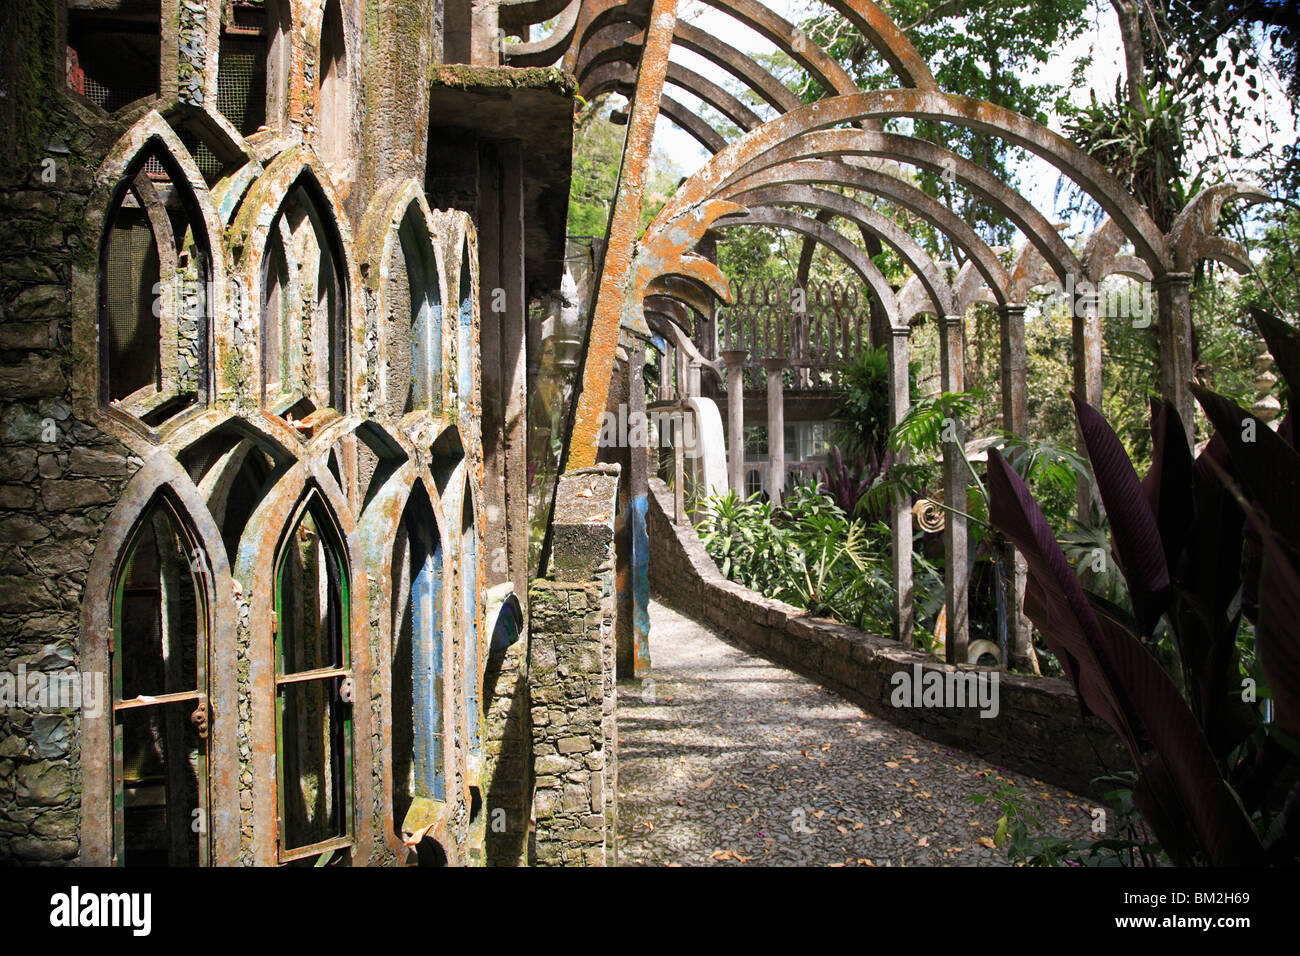 Las Pozas (the Pools), surrealist sculpture garden and architecture created by Edward James, Xilitla, Mexico - Stock Image